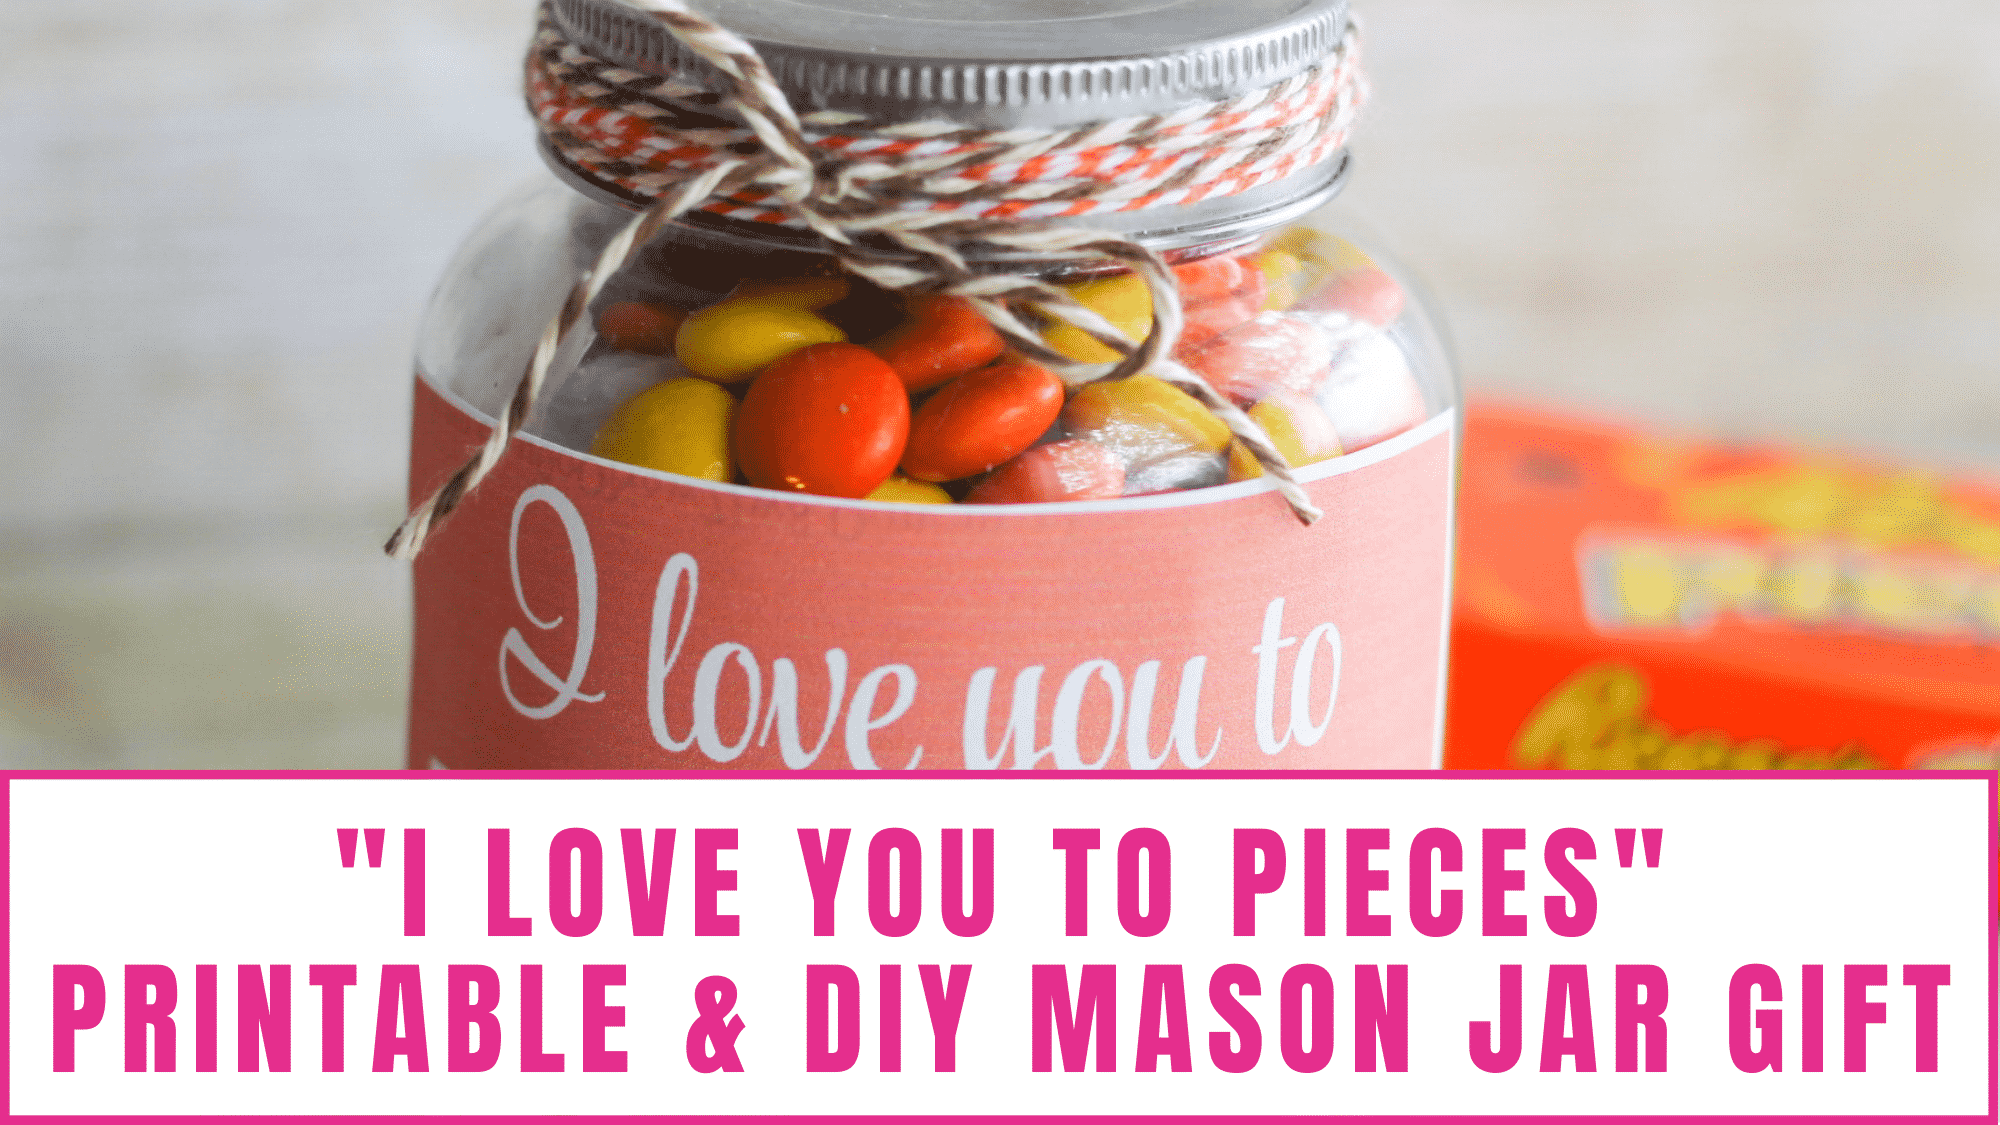 You can tell someone you love them by satisfying their sweet tooth when you give them this I love you to pieces printable DIY Mason jar gift.